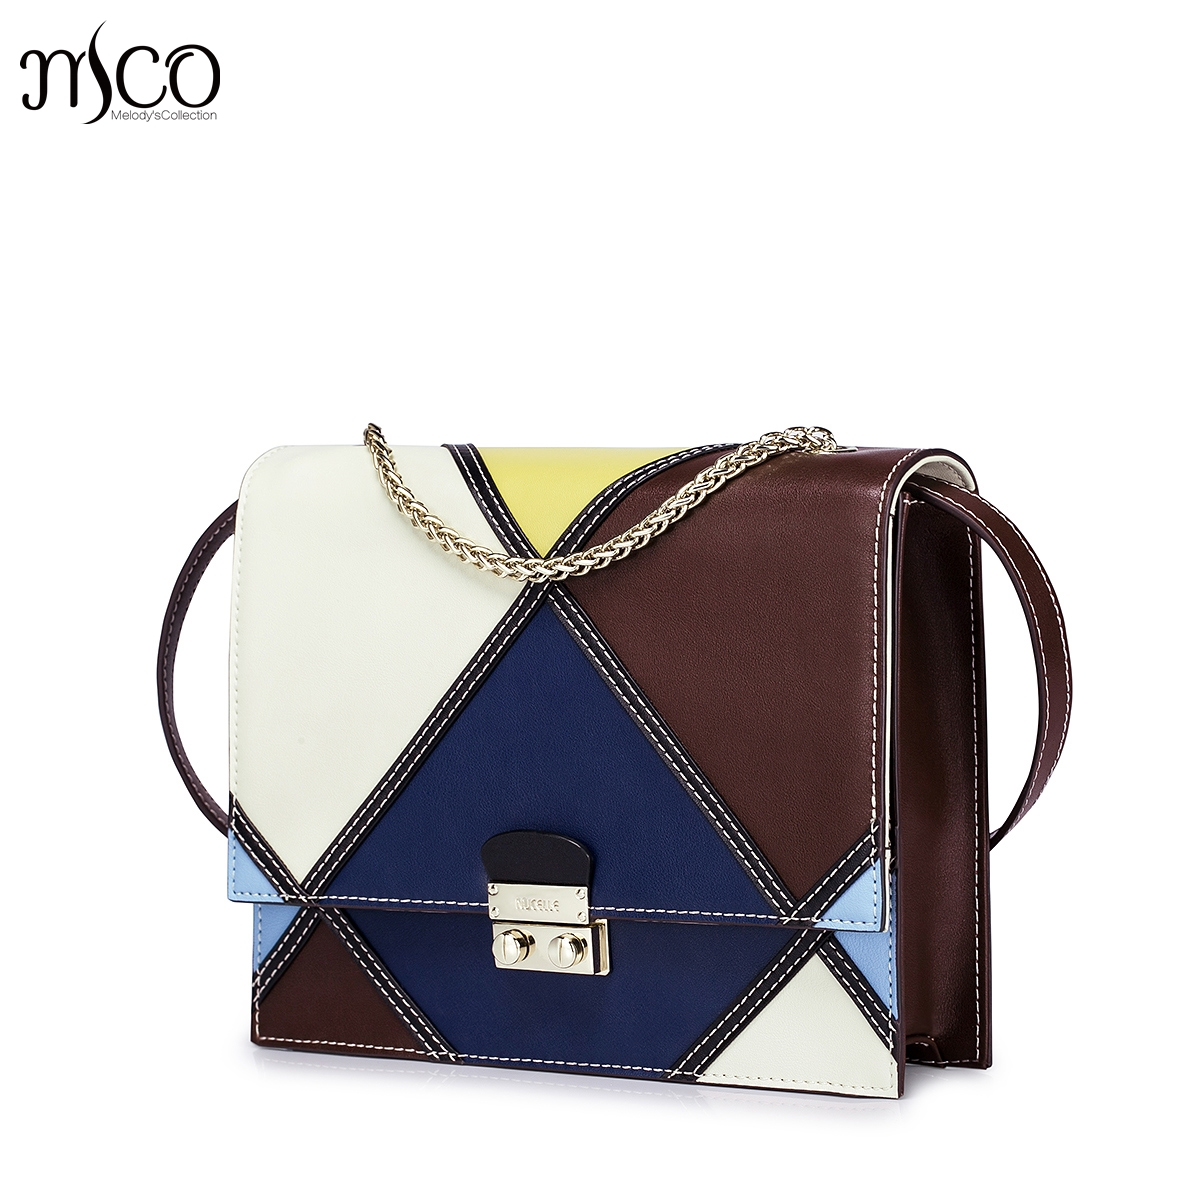 ФОТО 2016 Women's New Style Color Block Classic Vintage Chain Small Flap Handbag Cowhide Leather Casual Shoulder Bag Crossbody Purse